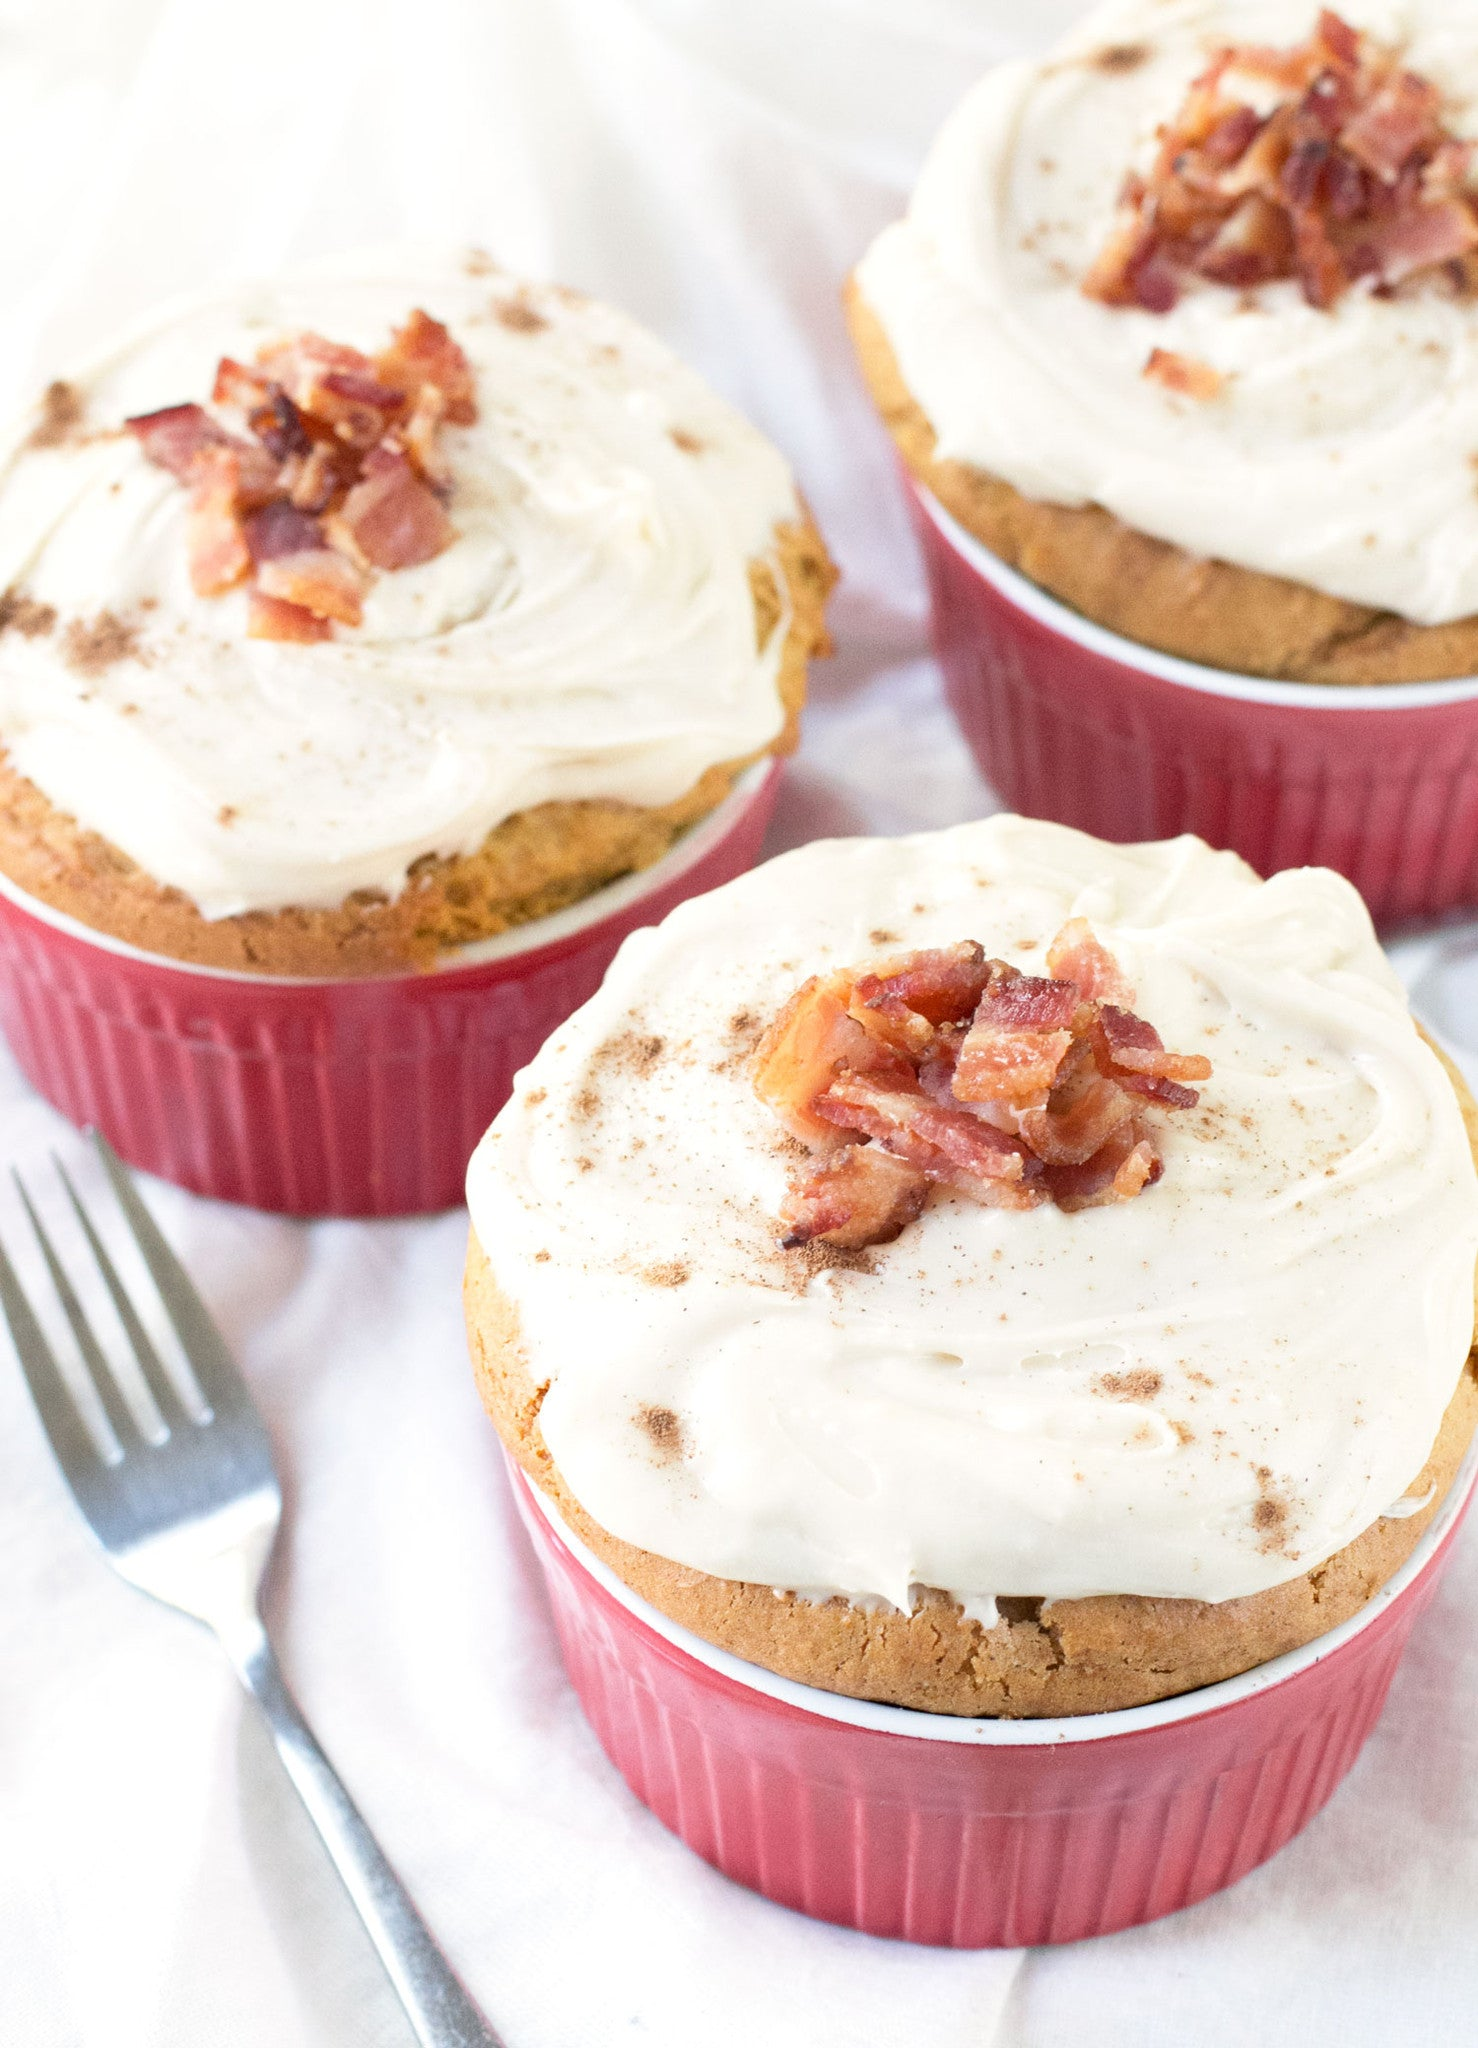 Individual Pumpkin Spice Cakes with Cream Cheese Frosting and Candied Bacon | Sauce + Style